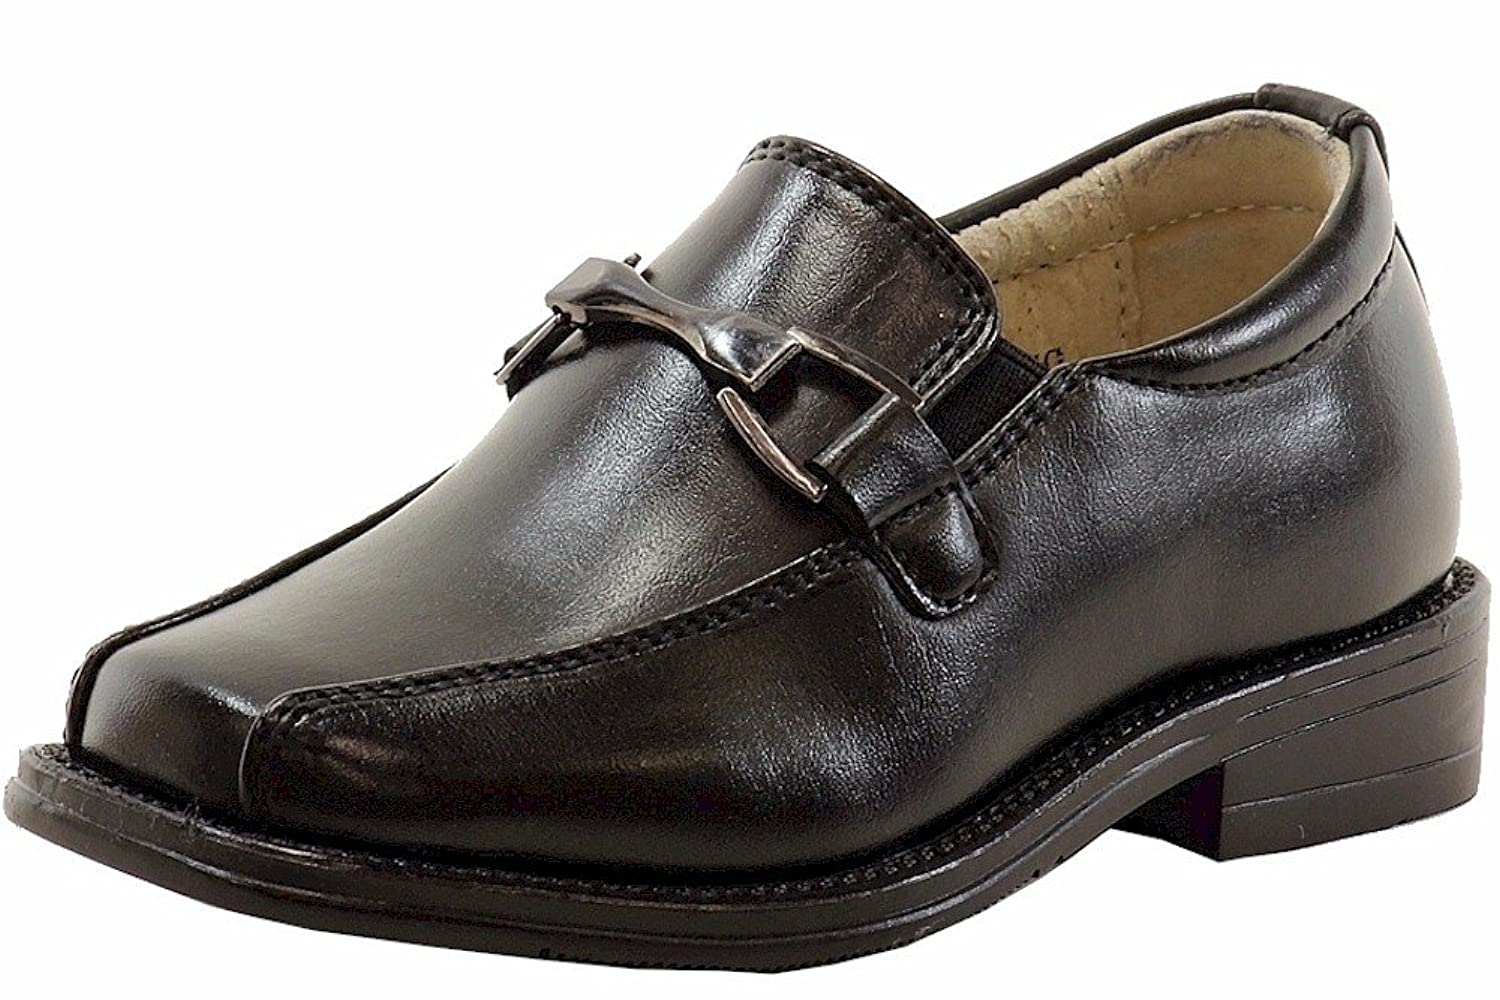 15f946baaf2 Amazon.com  Easy Strider Boy s The Classic Loafer Black School Uniform Loafers  Shoes  Clothing